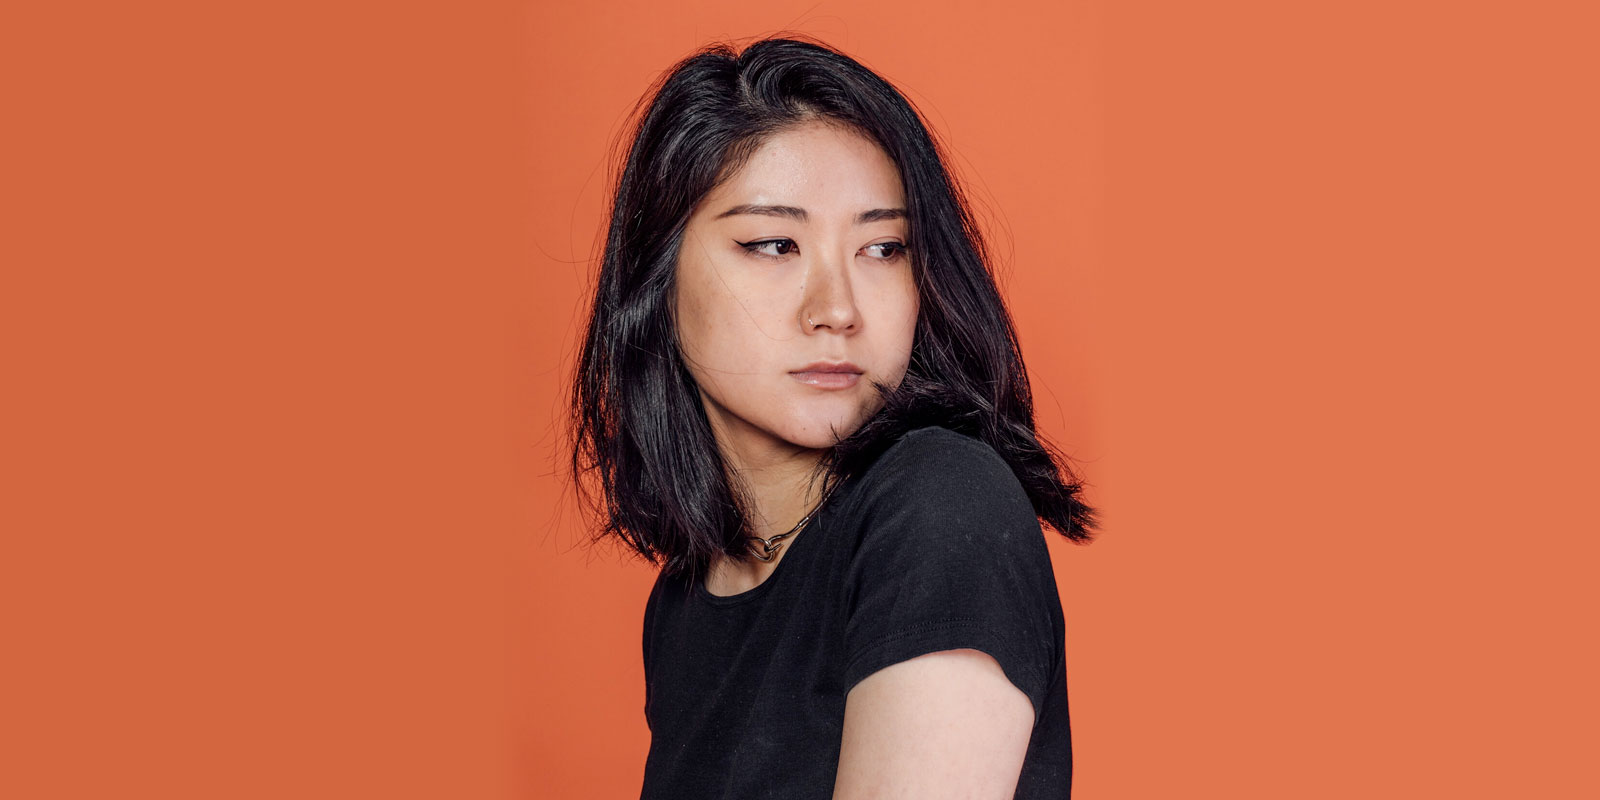 Qrion - 10 EDM Artists To Watch In 2021 - OZ EDM